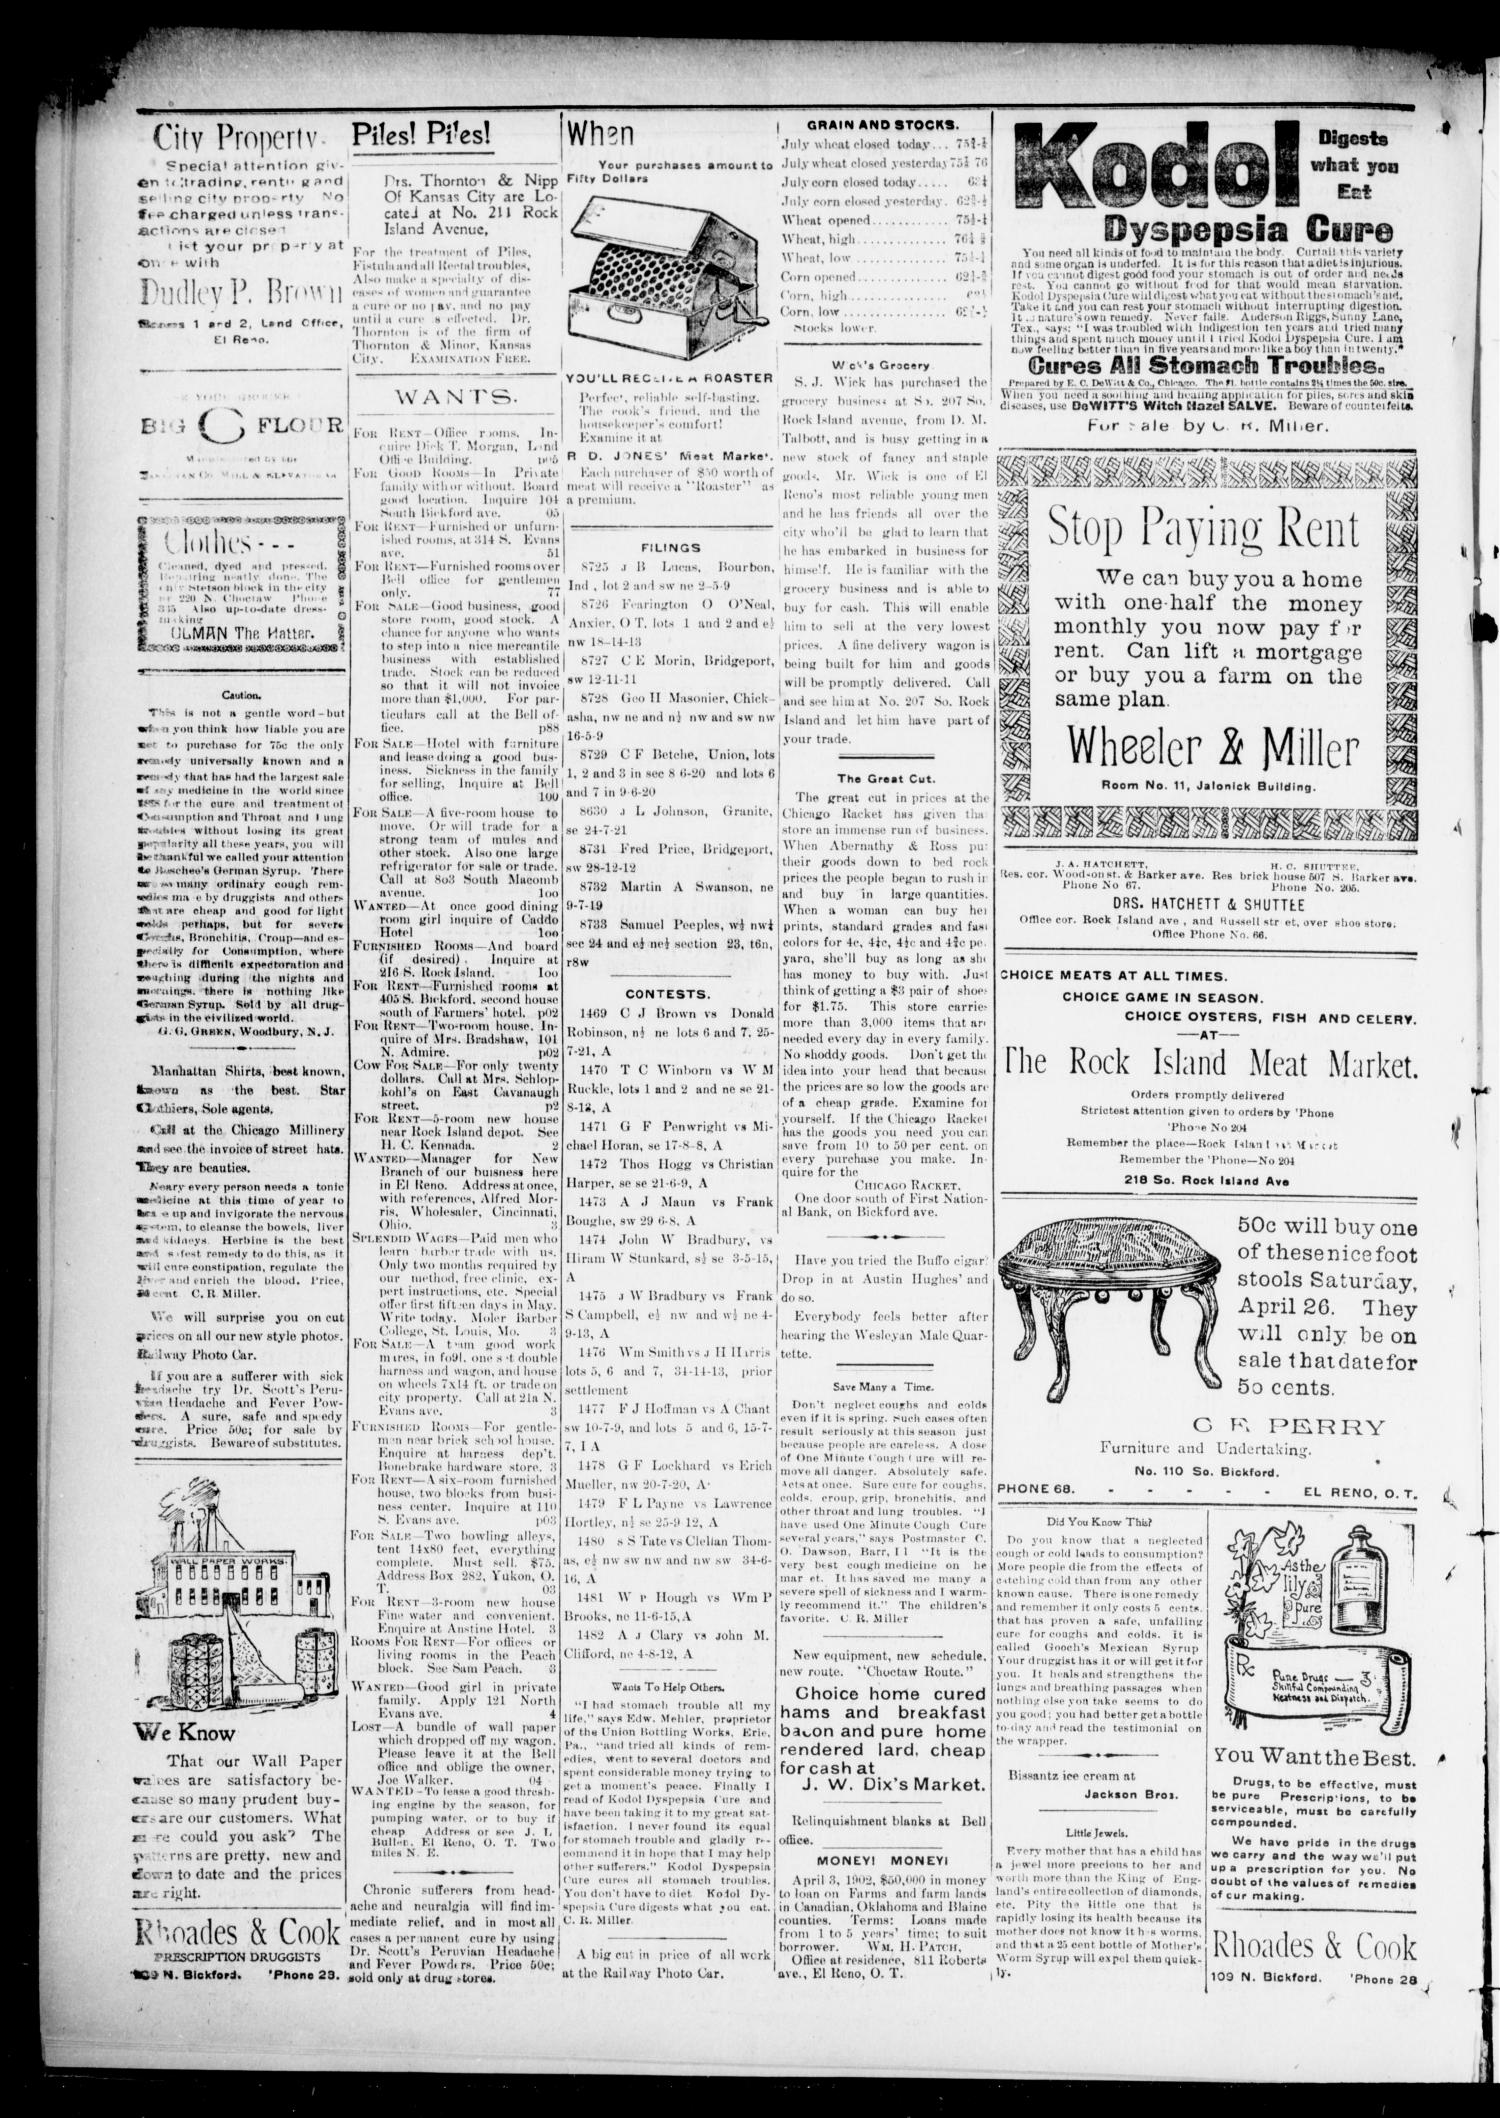 El Reno Evening Bell. (El Reno, Okla.), Vol. 7, No. 205, Ed. 1 Tuesday, April 22, 1902                                                                                                      [Sequence #]: 4 of 4